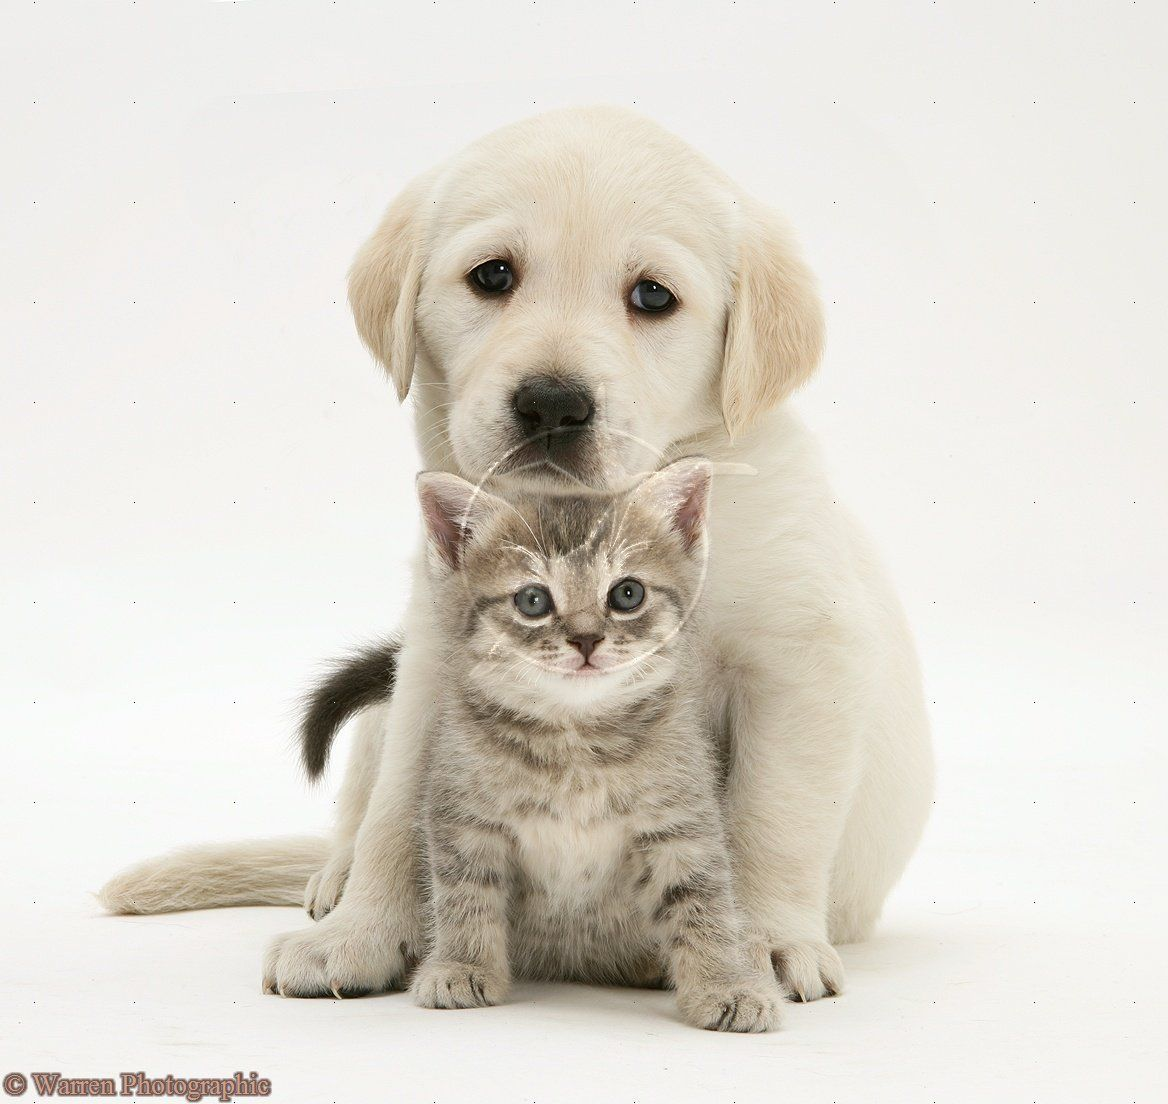 Pets Yellow Goldador Retriever Pup With Blue Tabby Kitten Photo Tabby Kitten Kitten Photos Puppies And Kitties